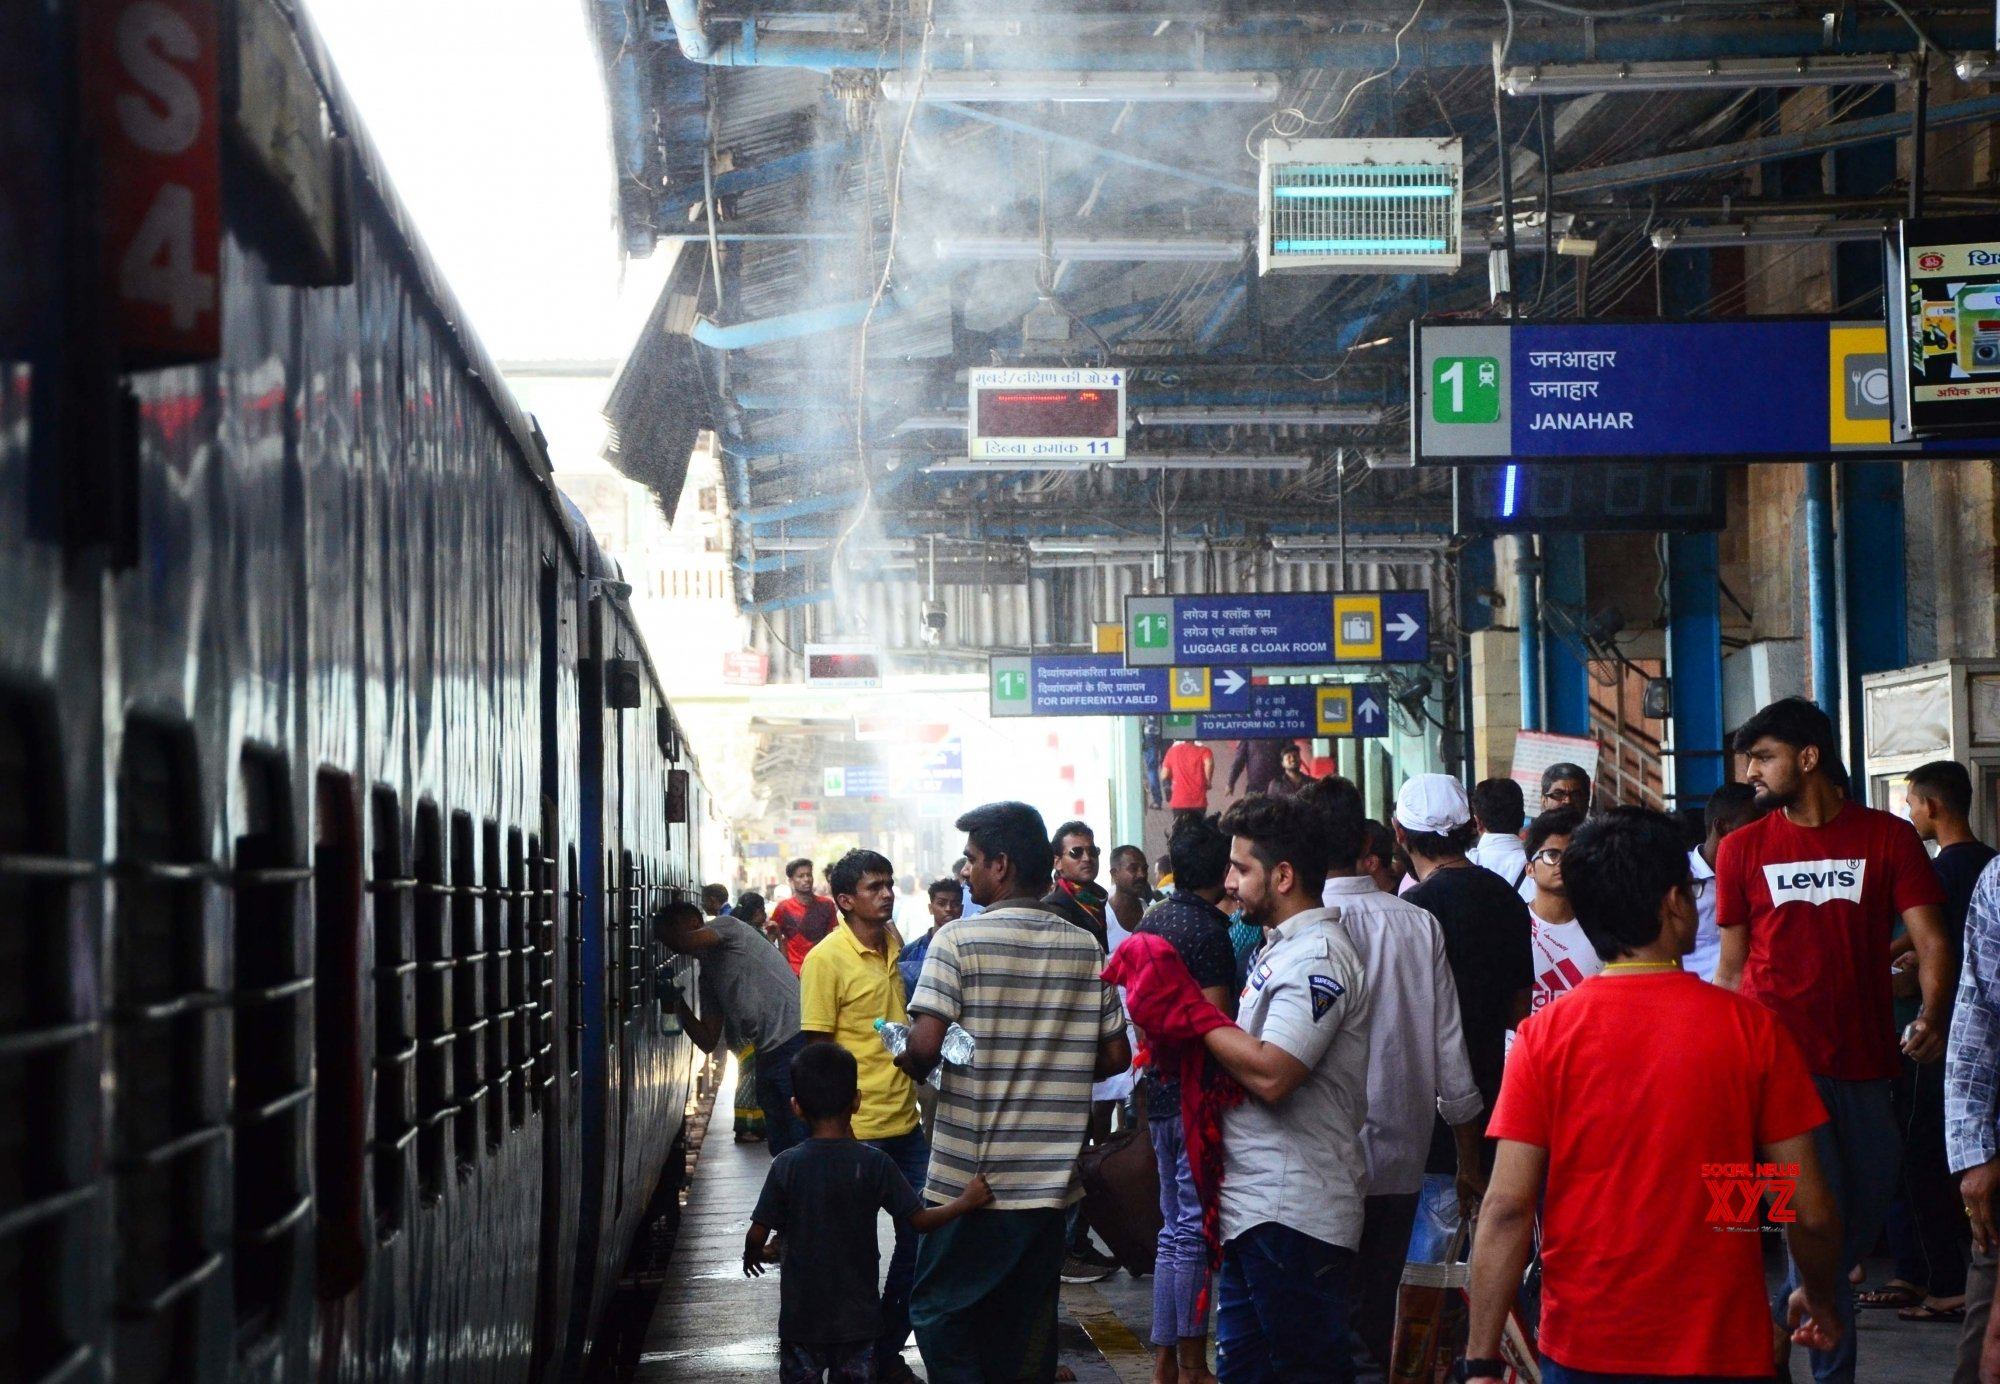 Nagpur: Mist system at Nagpur railway station to beat the heat #Gallery